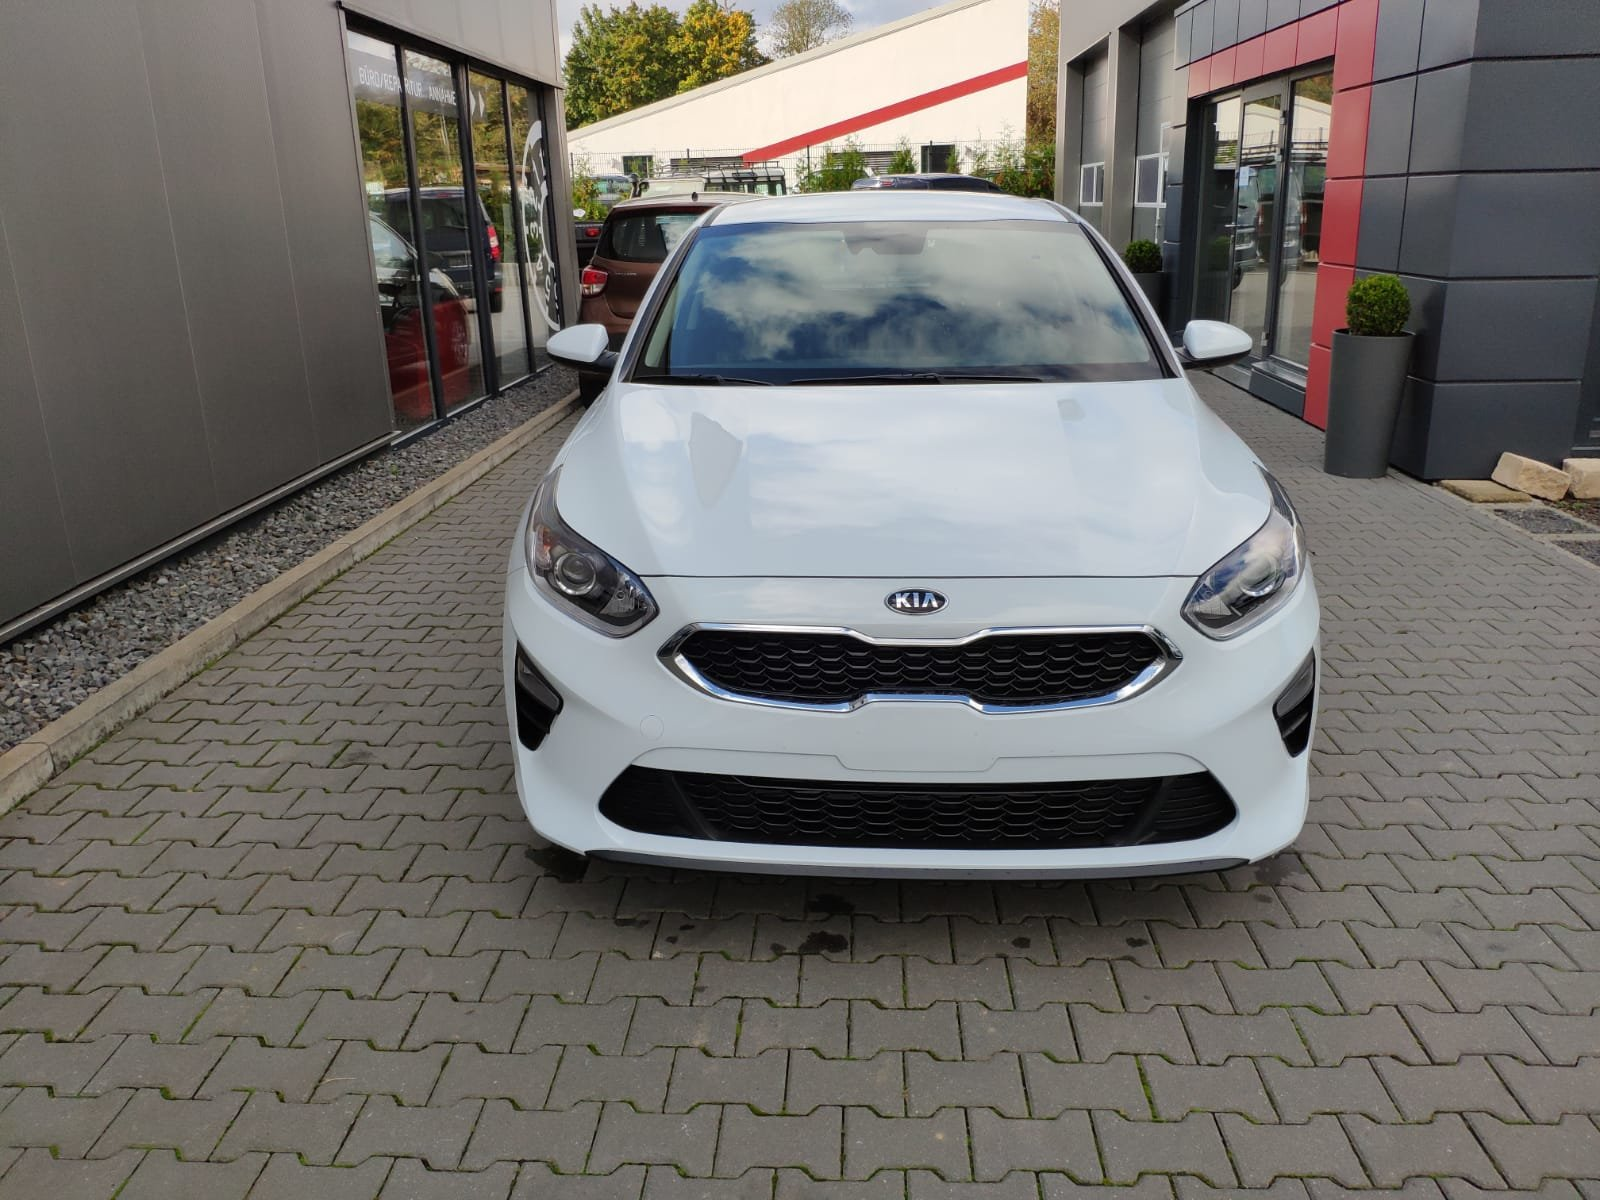 KIA CEED Cee'd 1.4 Limo Cool Autosoft BV, Enschede